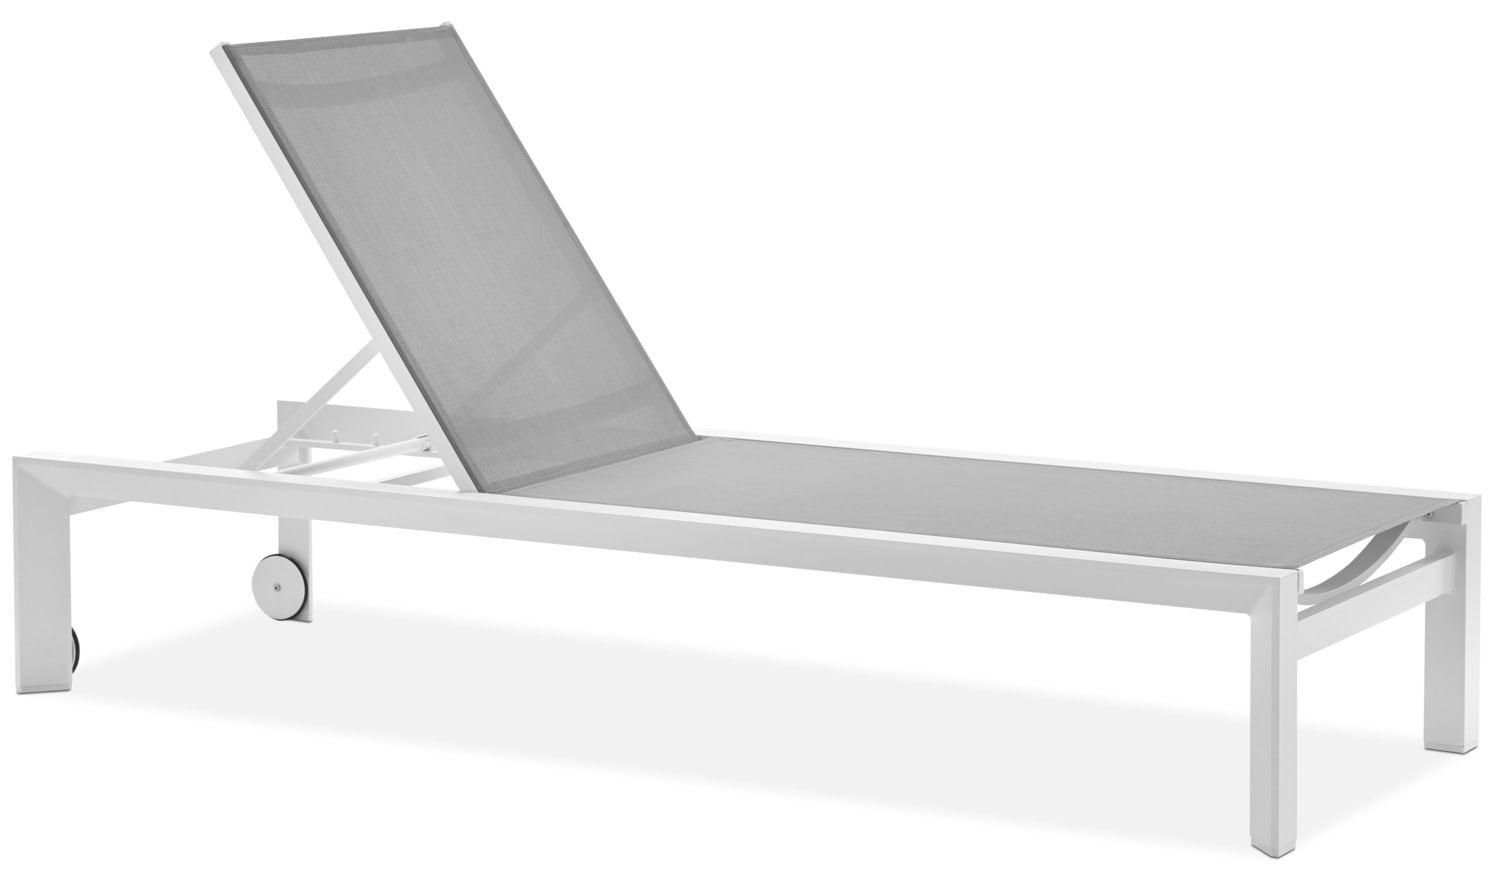 Biscayne Outdoor Lounger - Light Grey